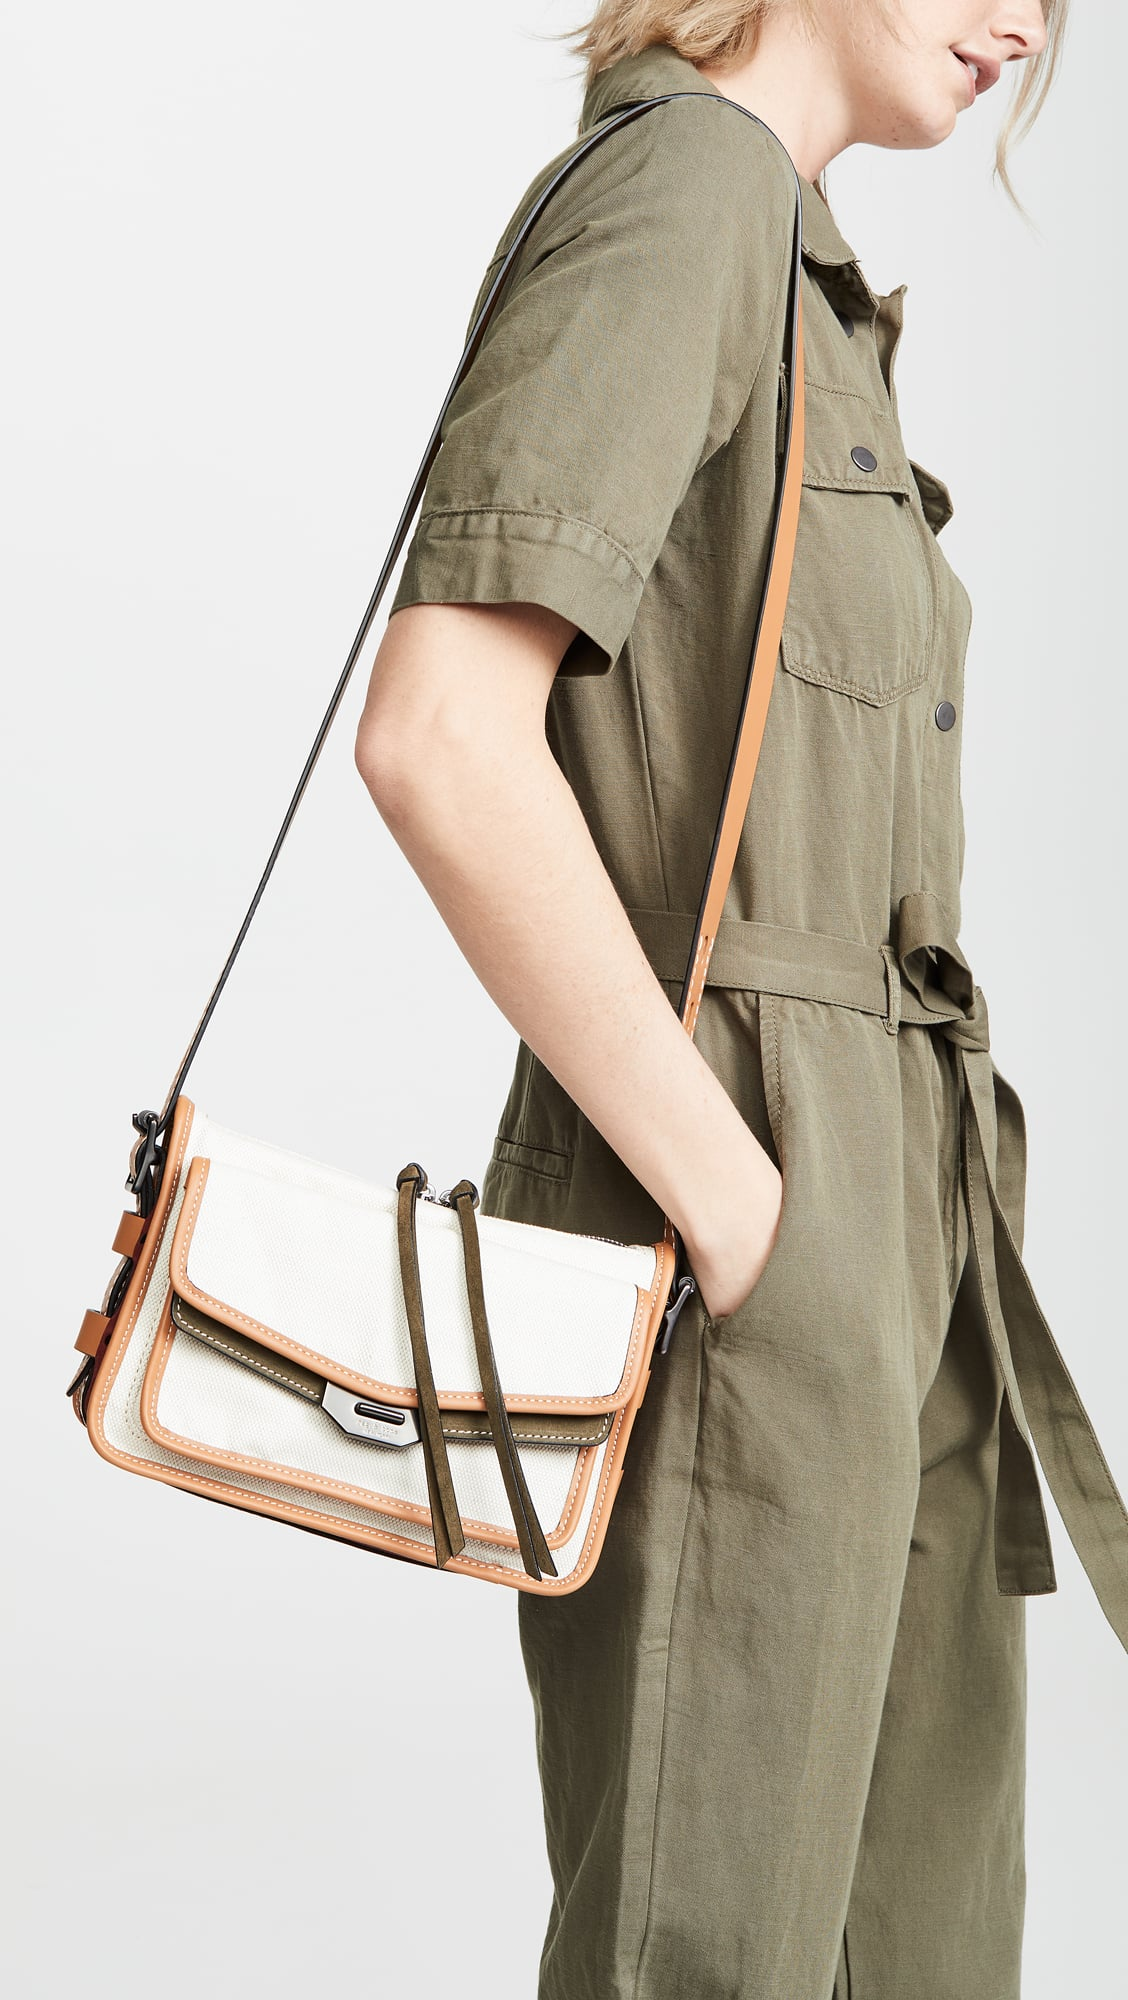 Rag Bone Small Field Messenger Bag Keep Your Hands Free This Spring With These 100 Cute And Functional Crossbody Bags Popsugar Fashion Photo 37